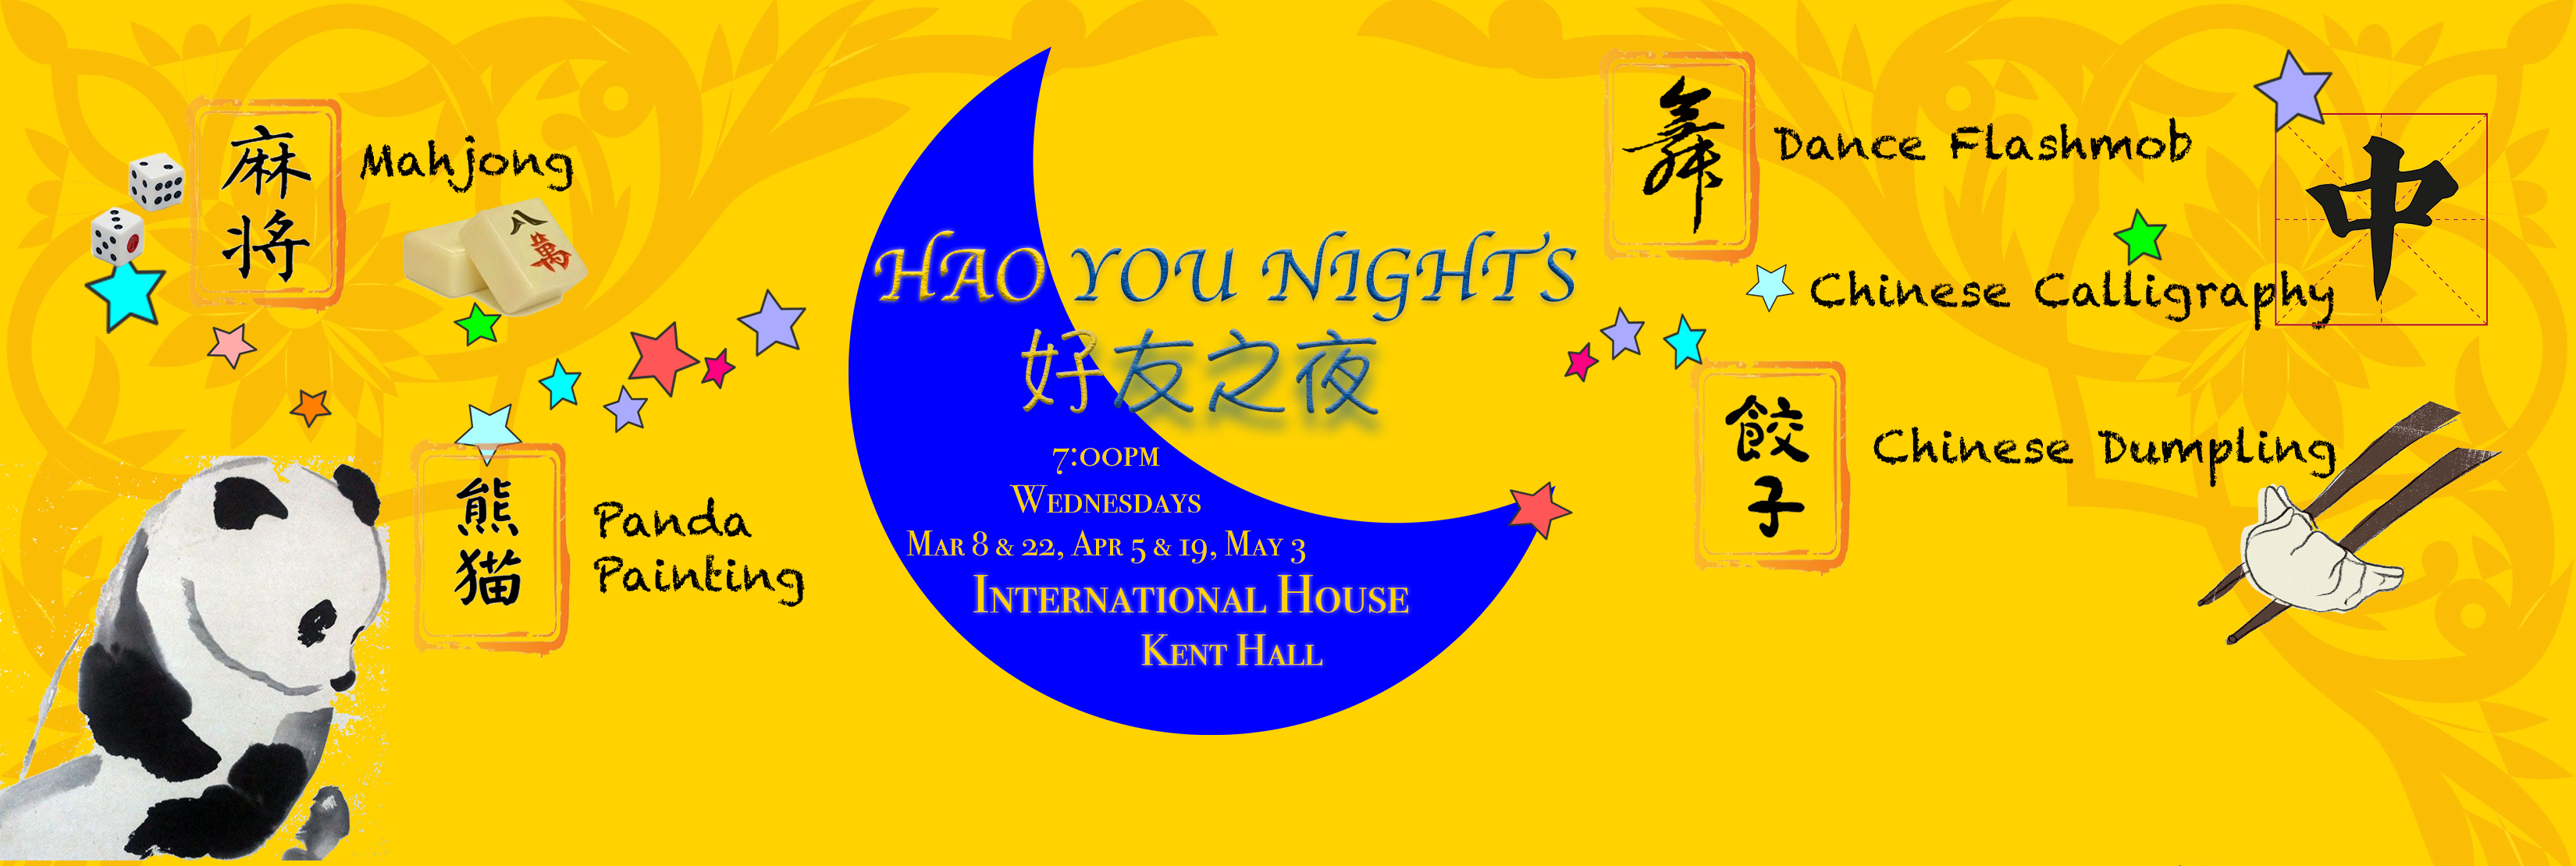 Hao You Nights at the iHouse